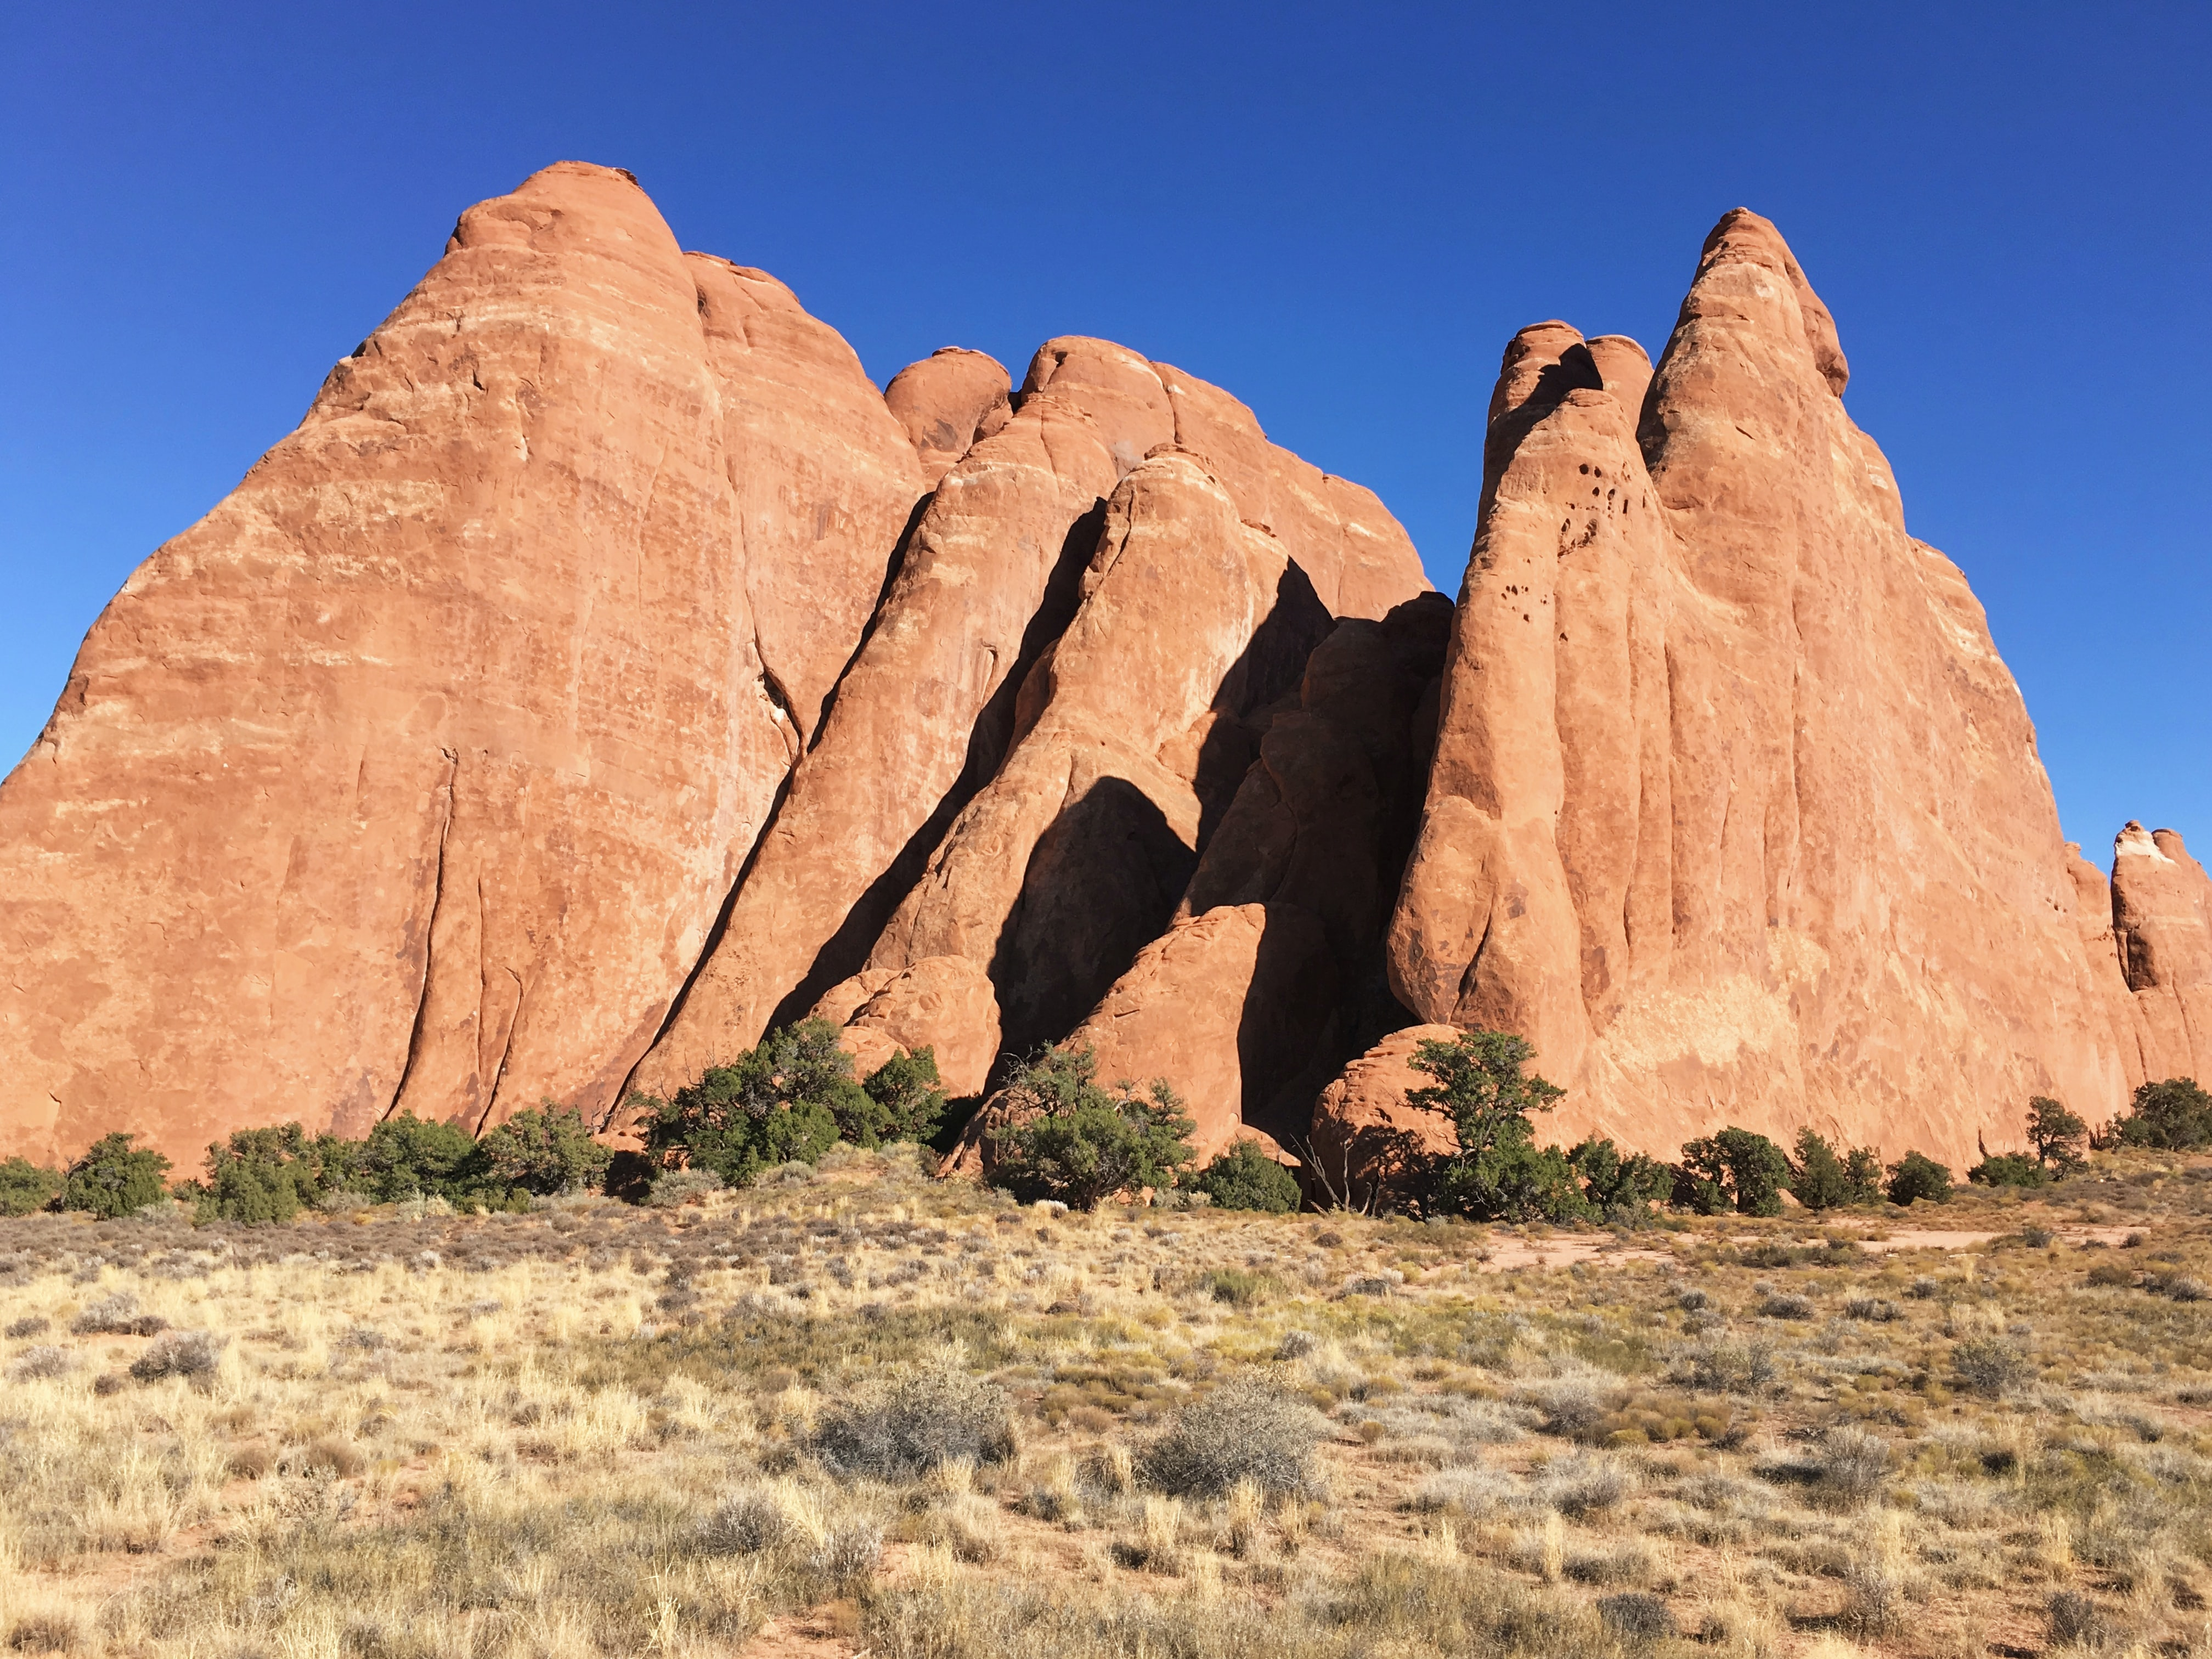 brown rock formation at daytime